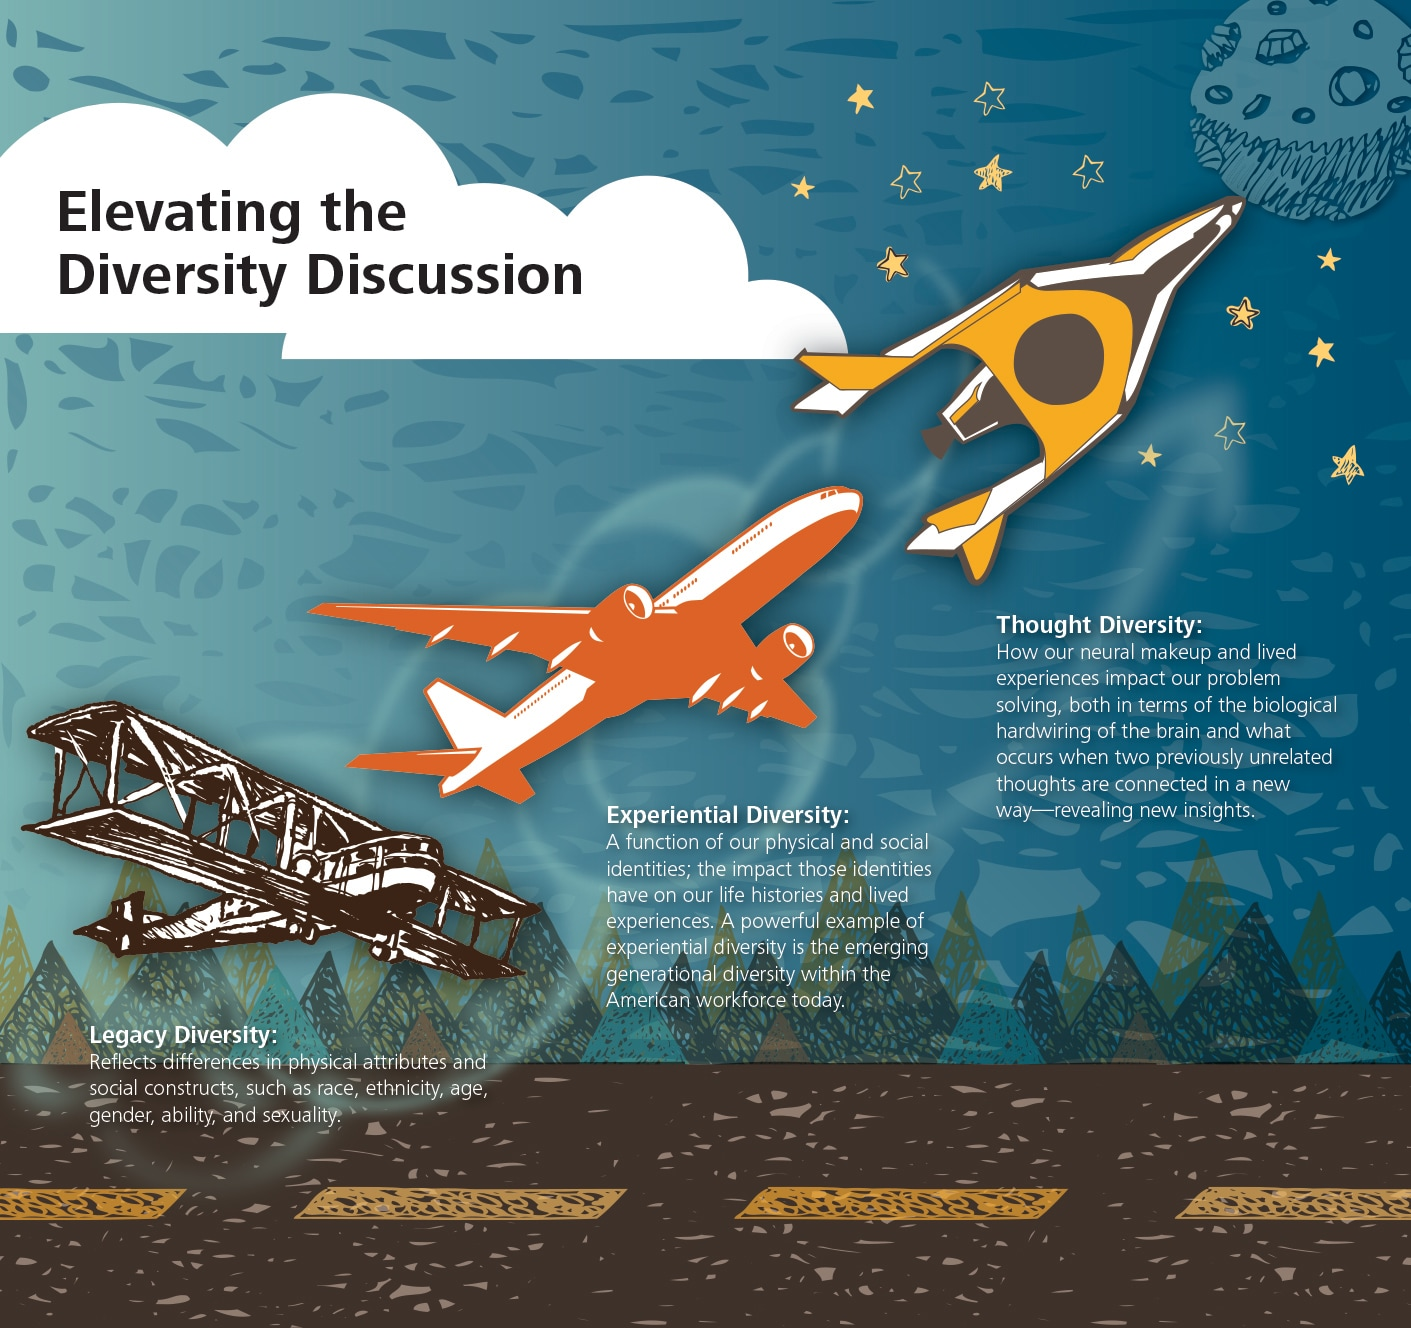 Elevating-the-diversity-discussion